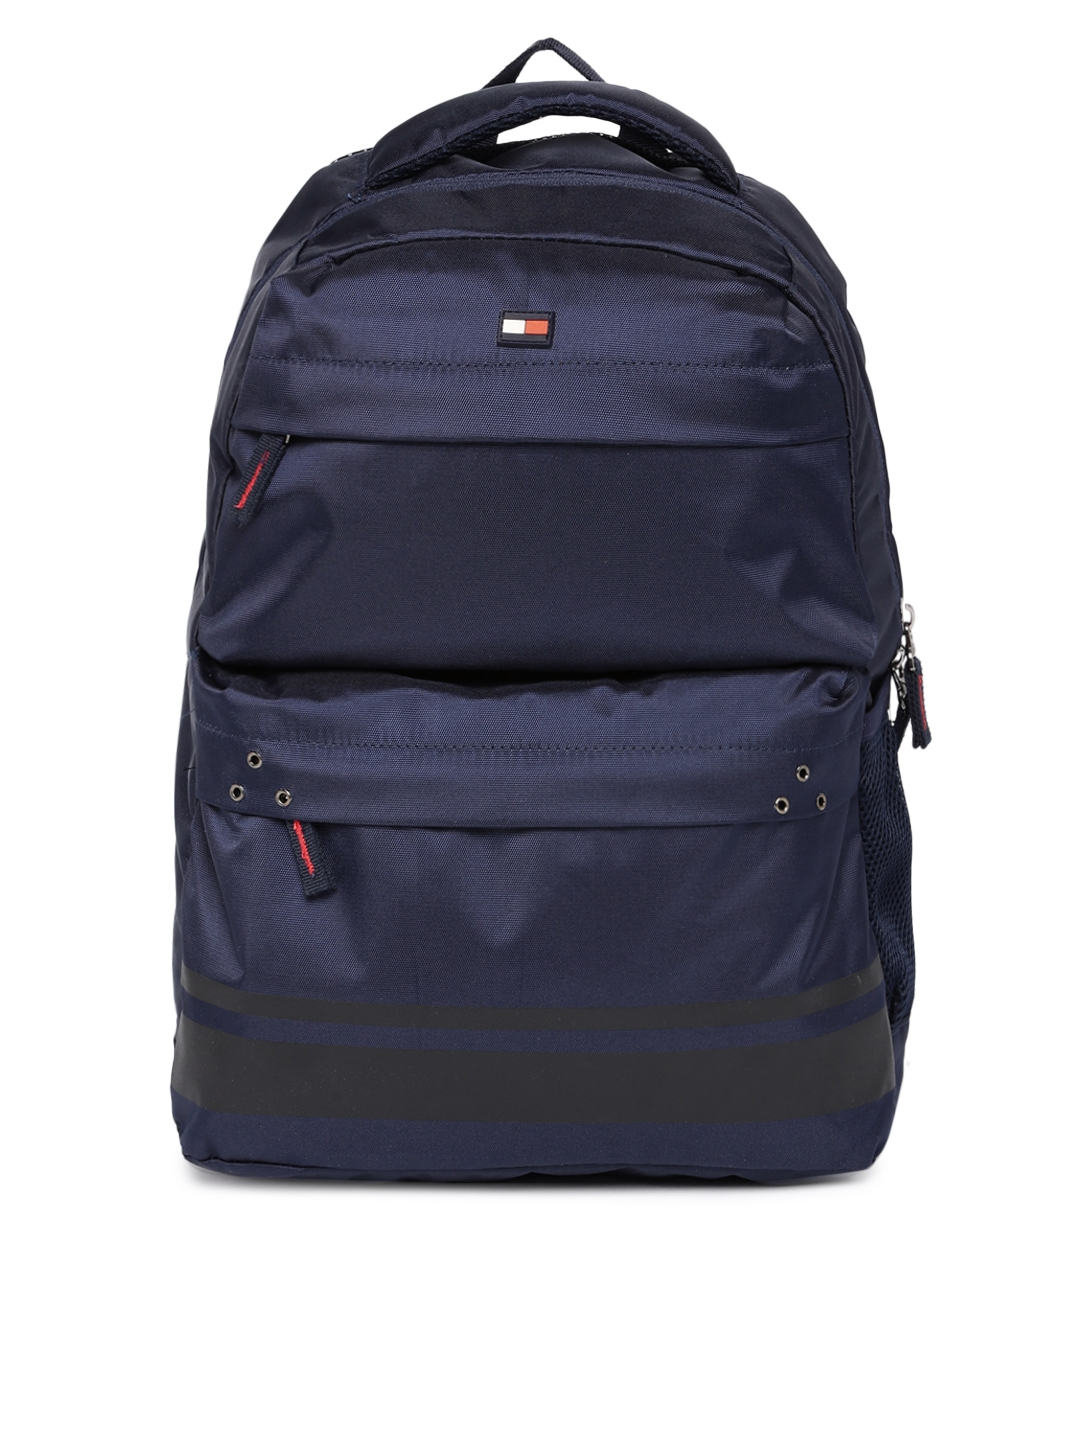 4a4e76cc88f Buy Tommy Hilfiger Unisex Navy Blue Solid Laptop Backpack ...